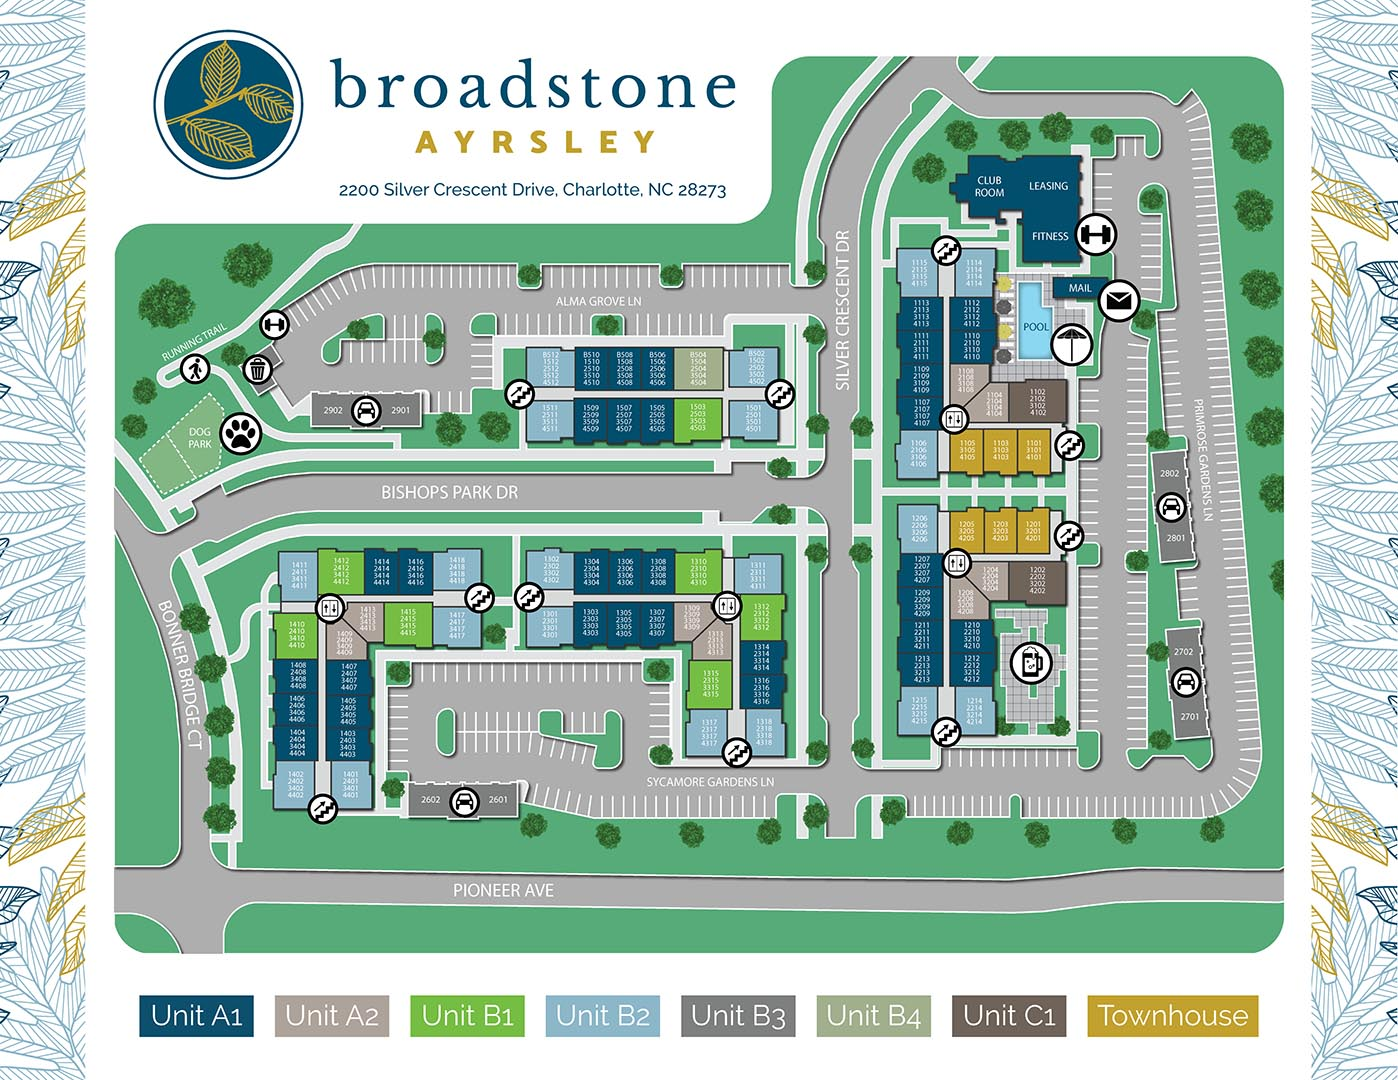 A site map for Broadstone Ayrsley